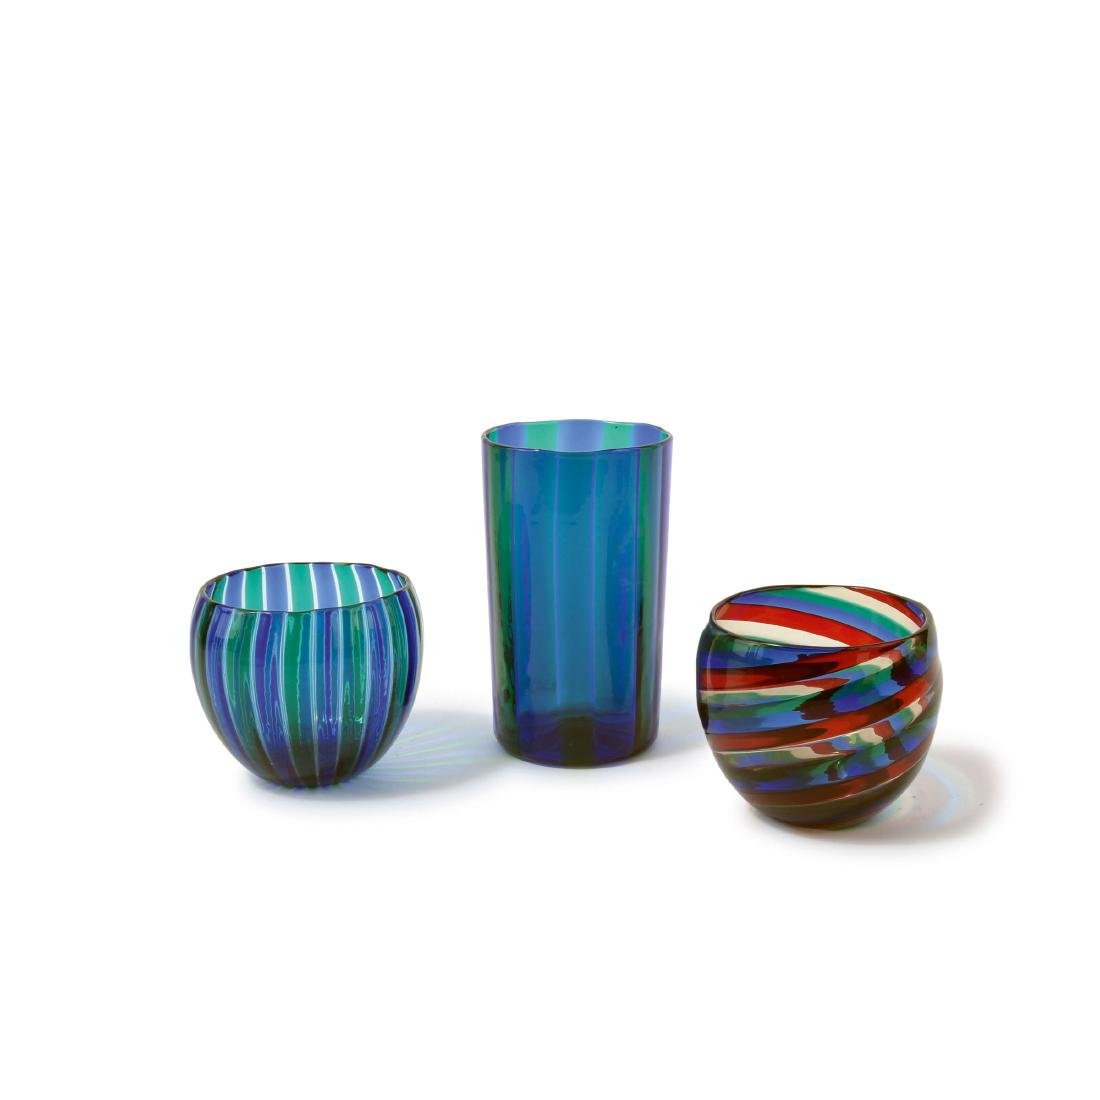 Three 'A canne' vases, 1960s